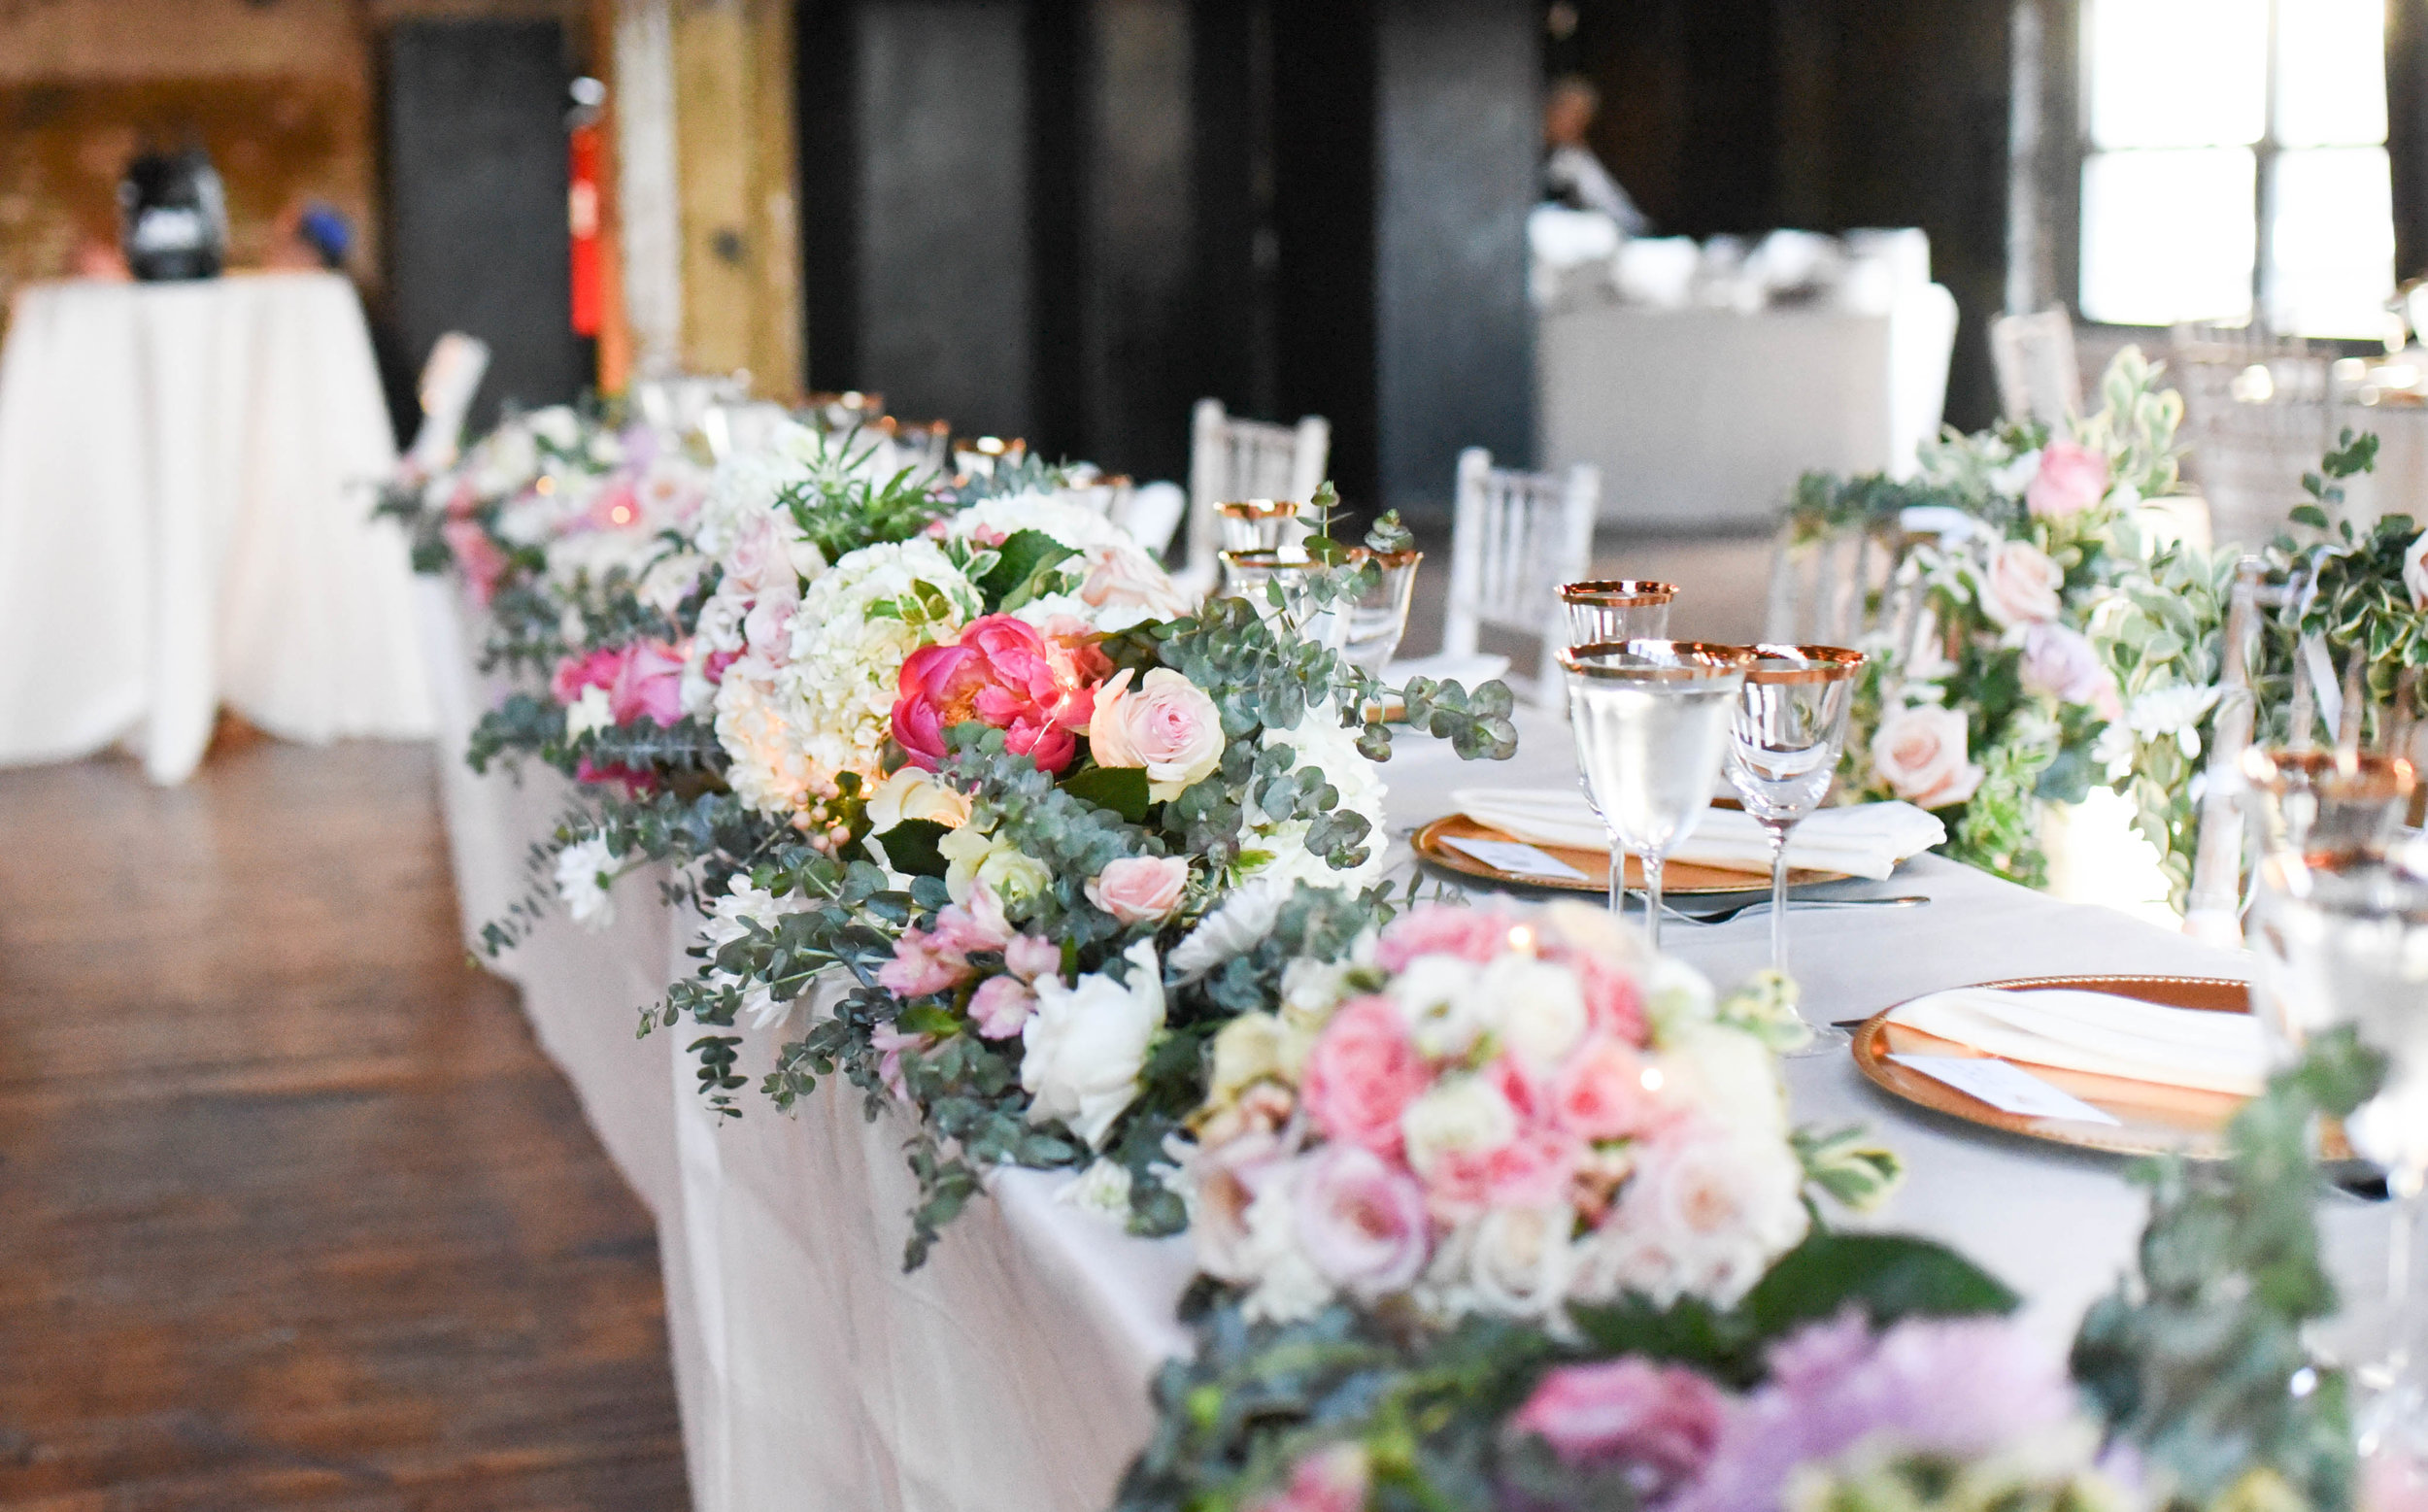 A stunning table garland of high end pink and white flowers